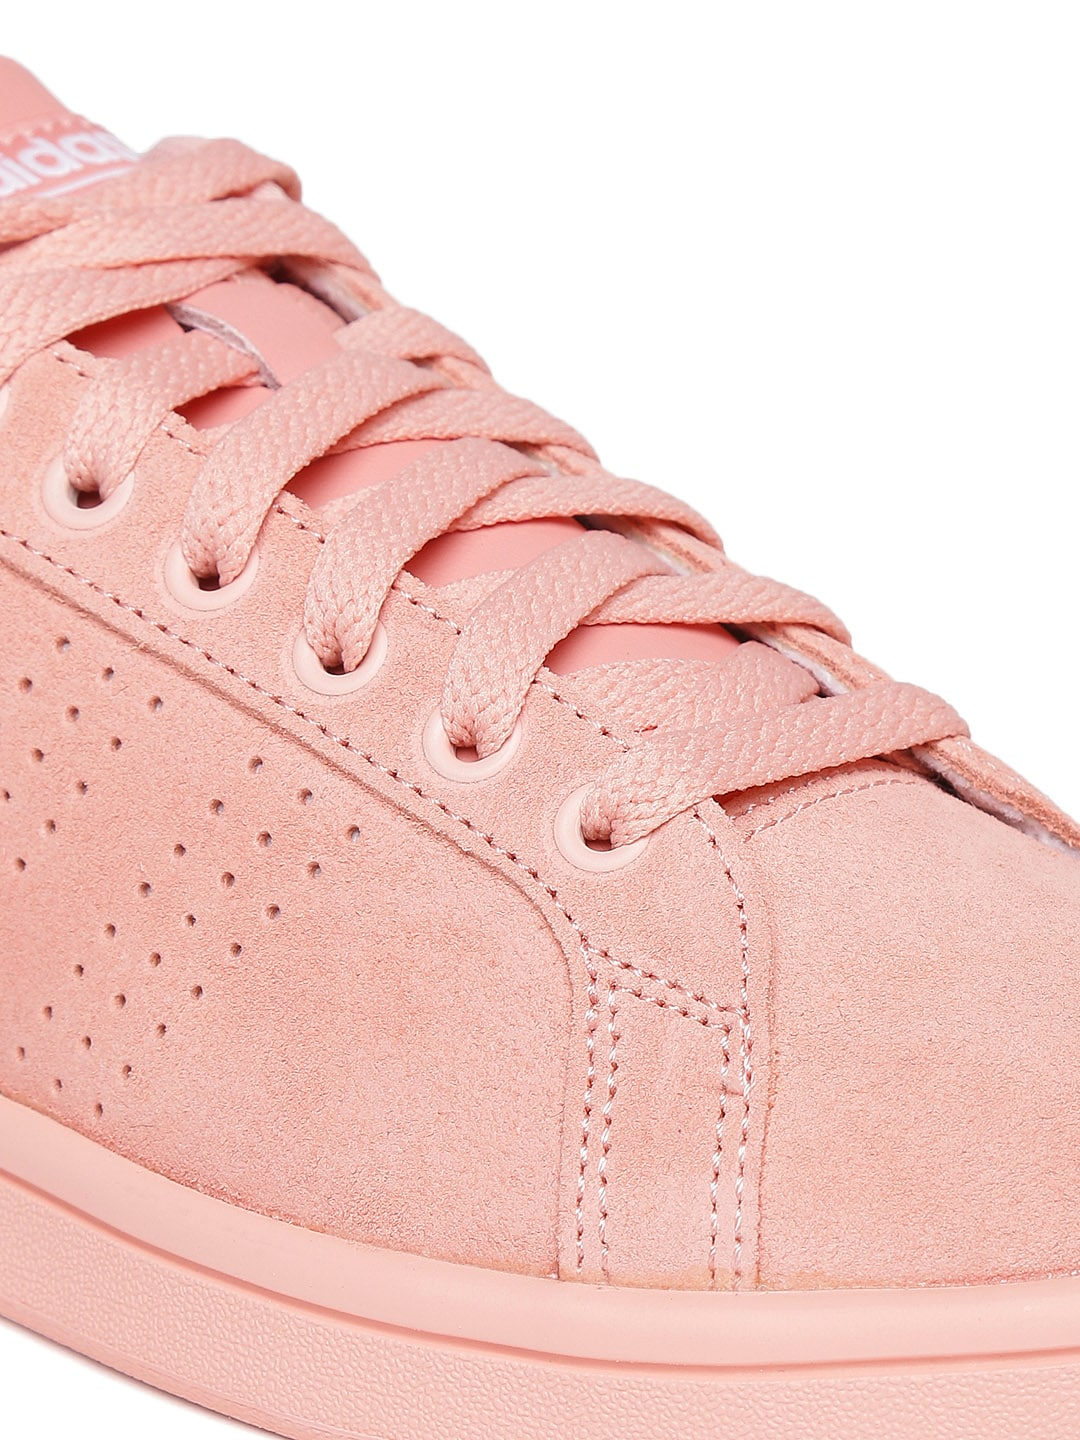 pretty nice 13e01 34785 ... adidas neo suede pink silver adidas neo pink shoes buy adidas neo pink  shoes online in ...